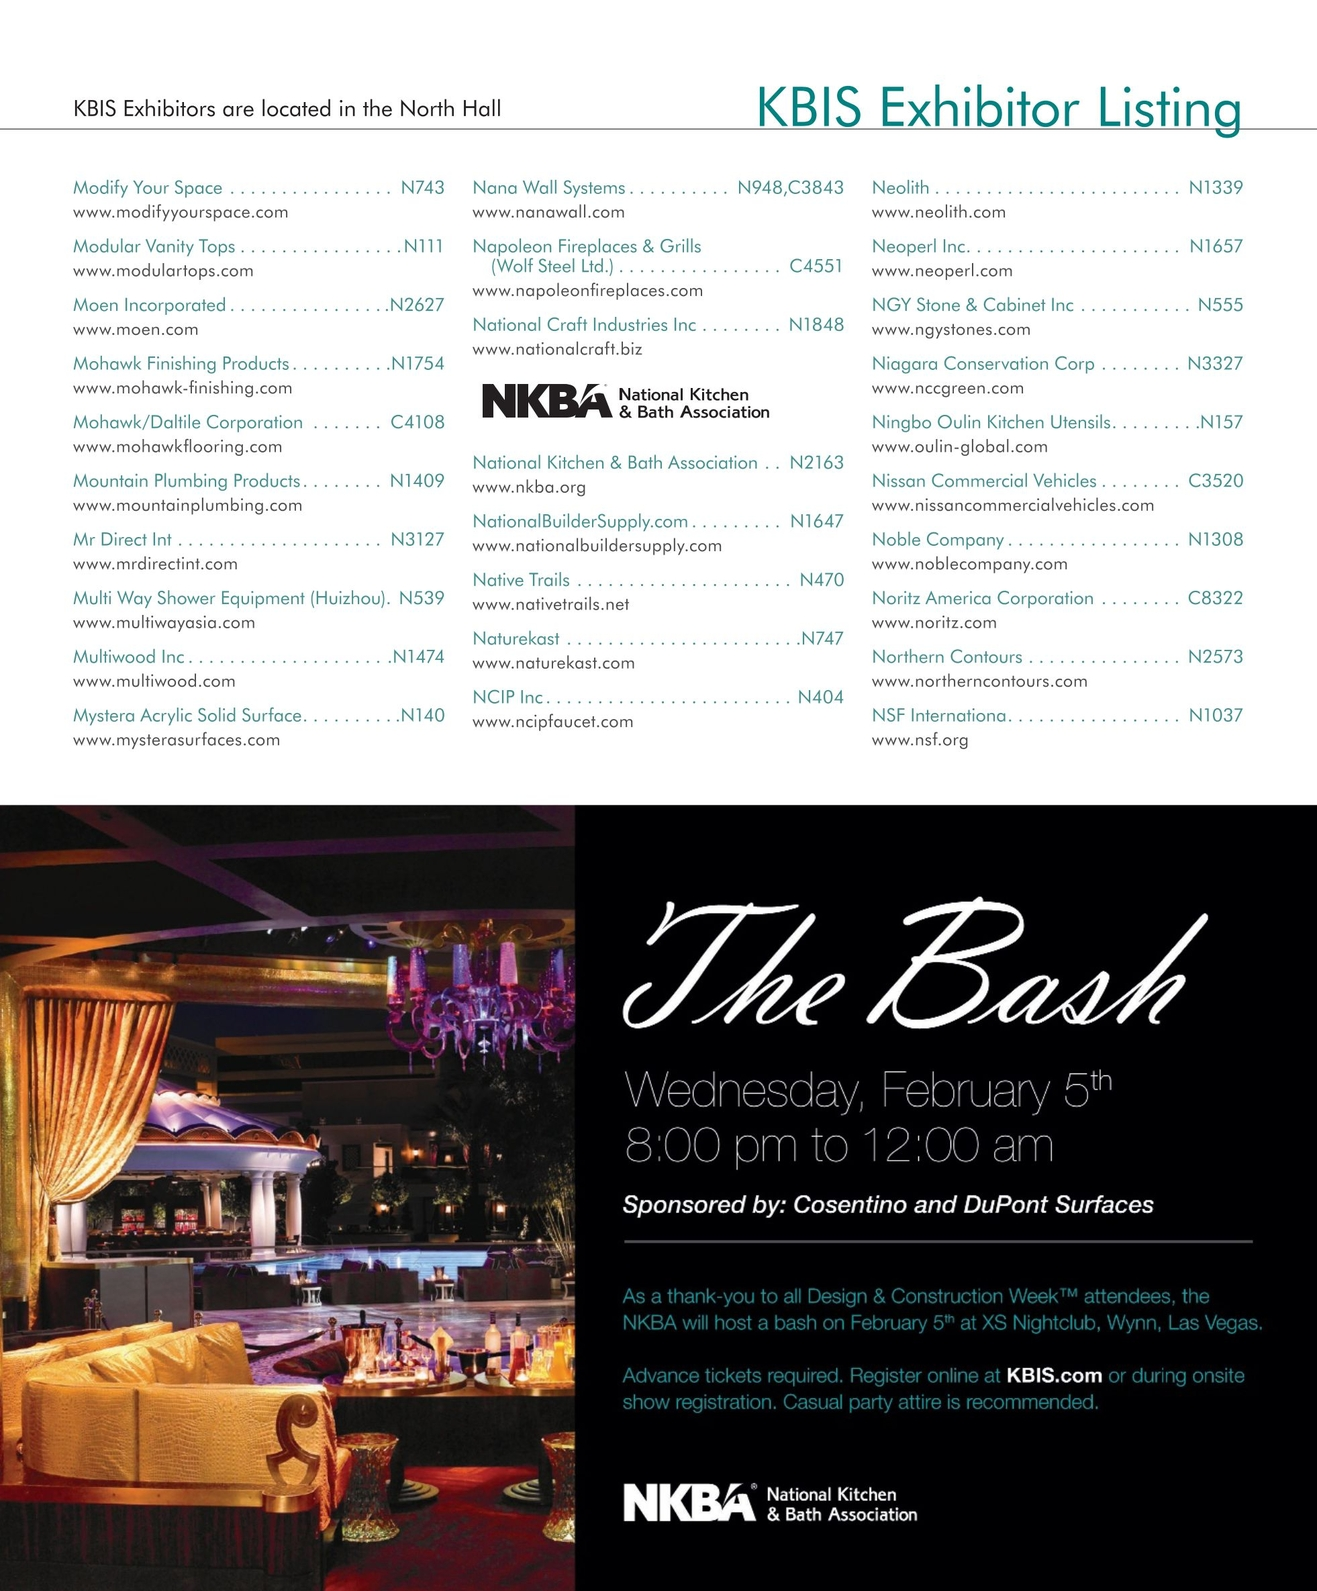 KBIS 2014 Show Directory [60 - 61]